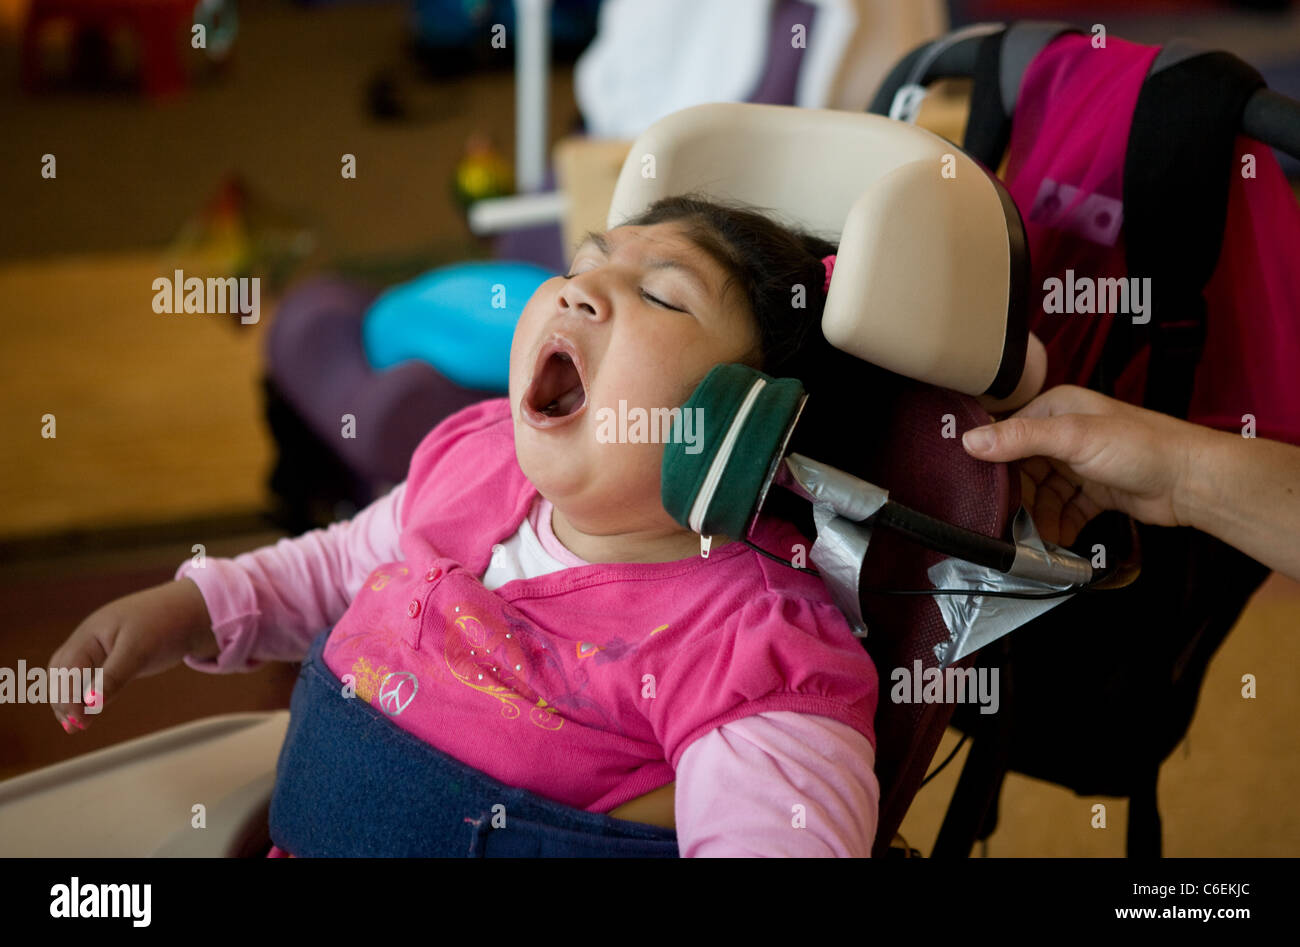 Seven year old deaf blind child vocalizing during a speech therapy session in school. - Stock Image